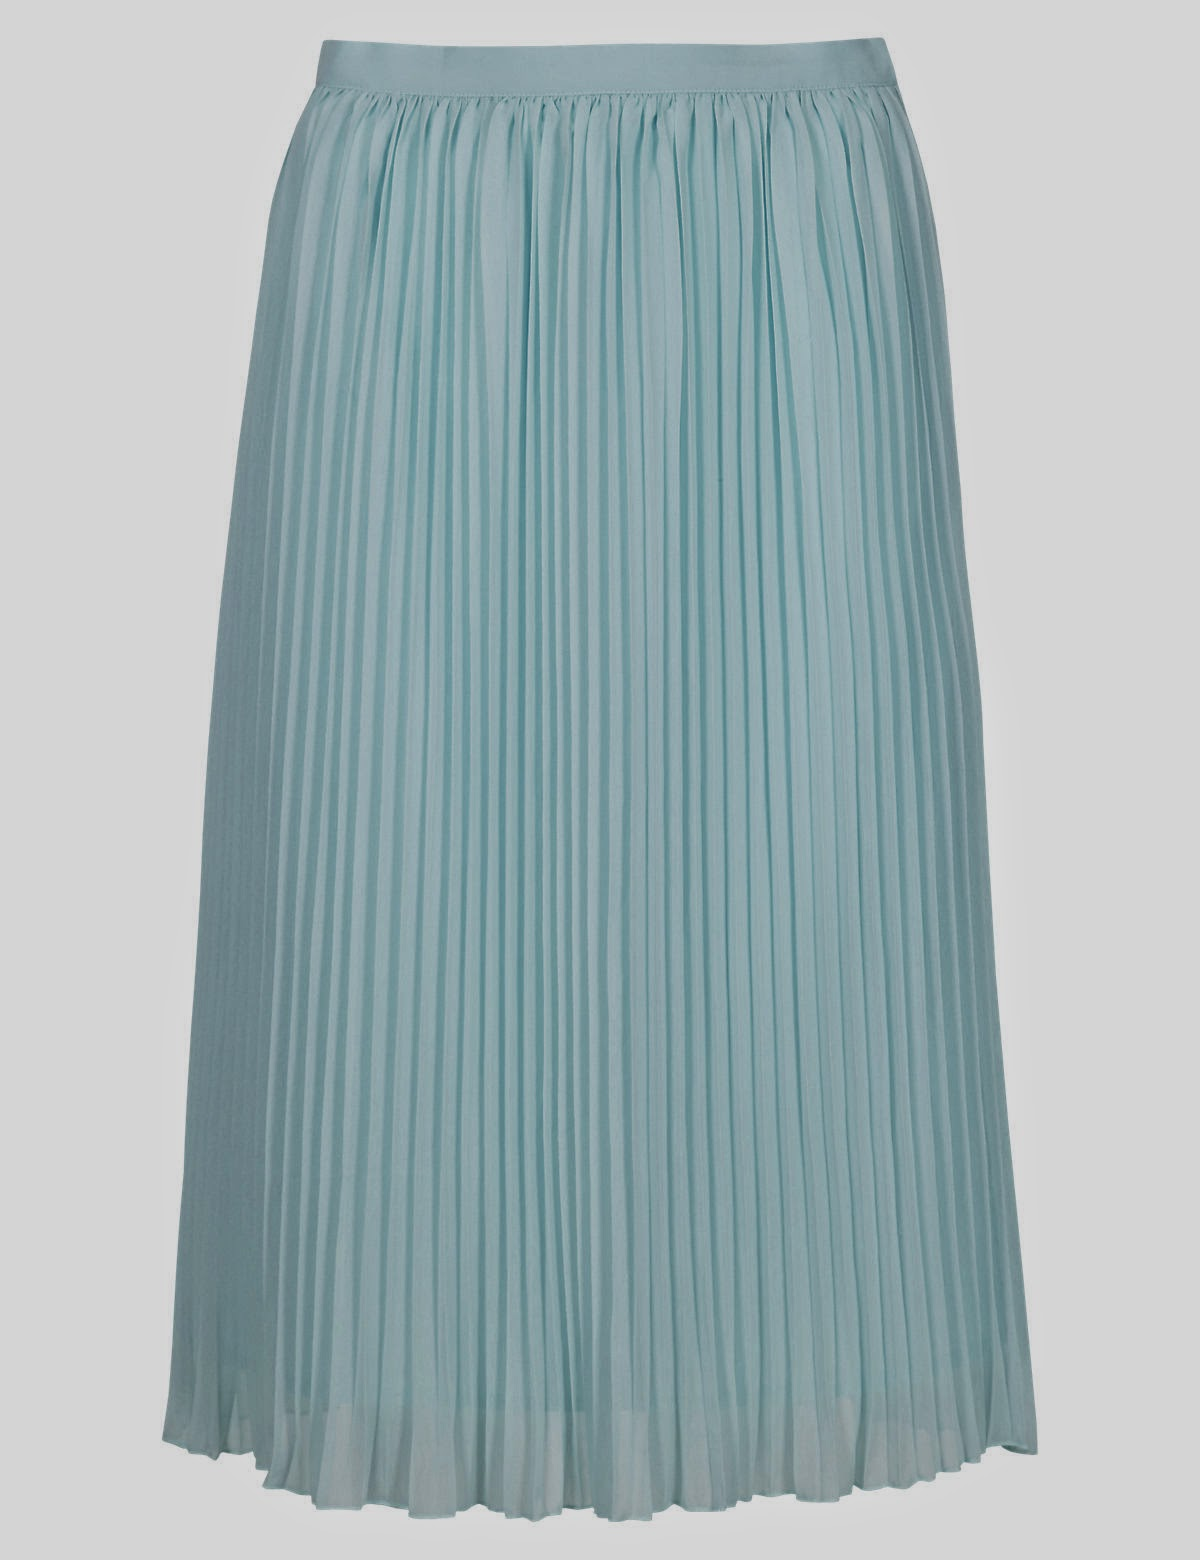 Limited Edition pleated skirt photos